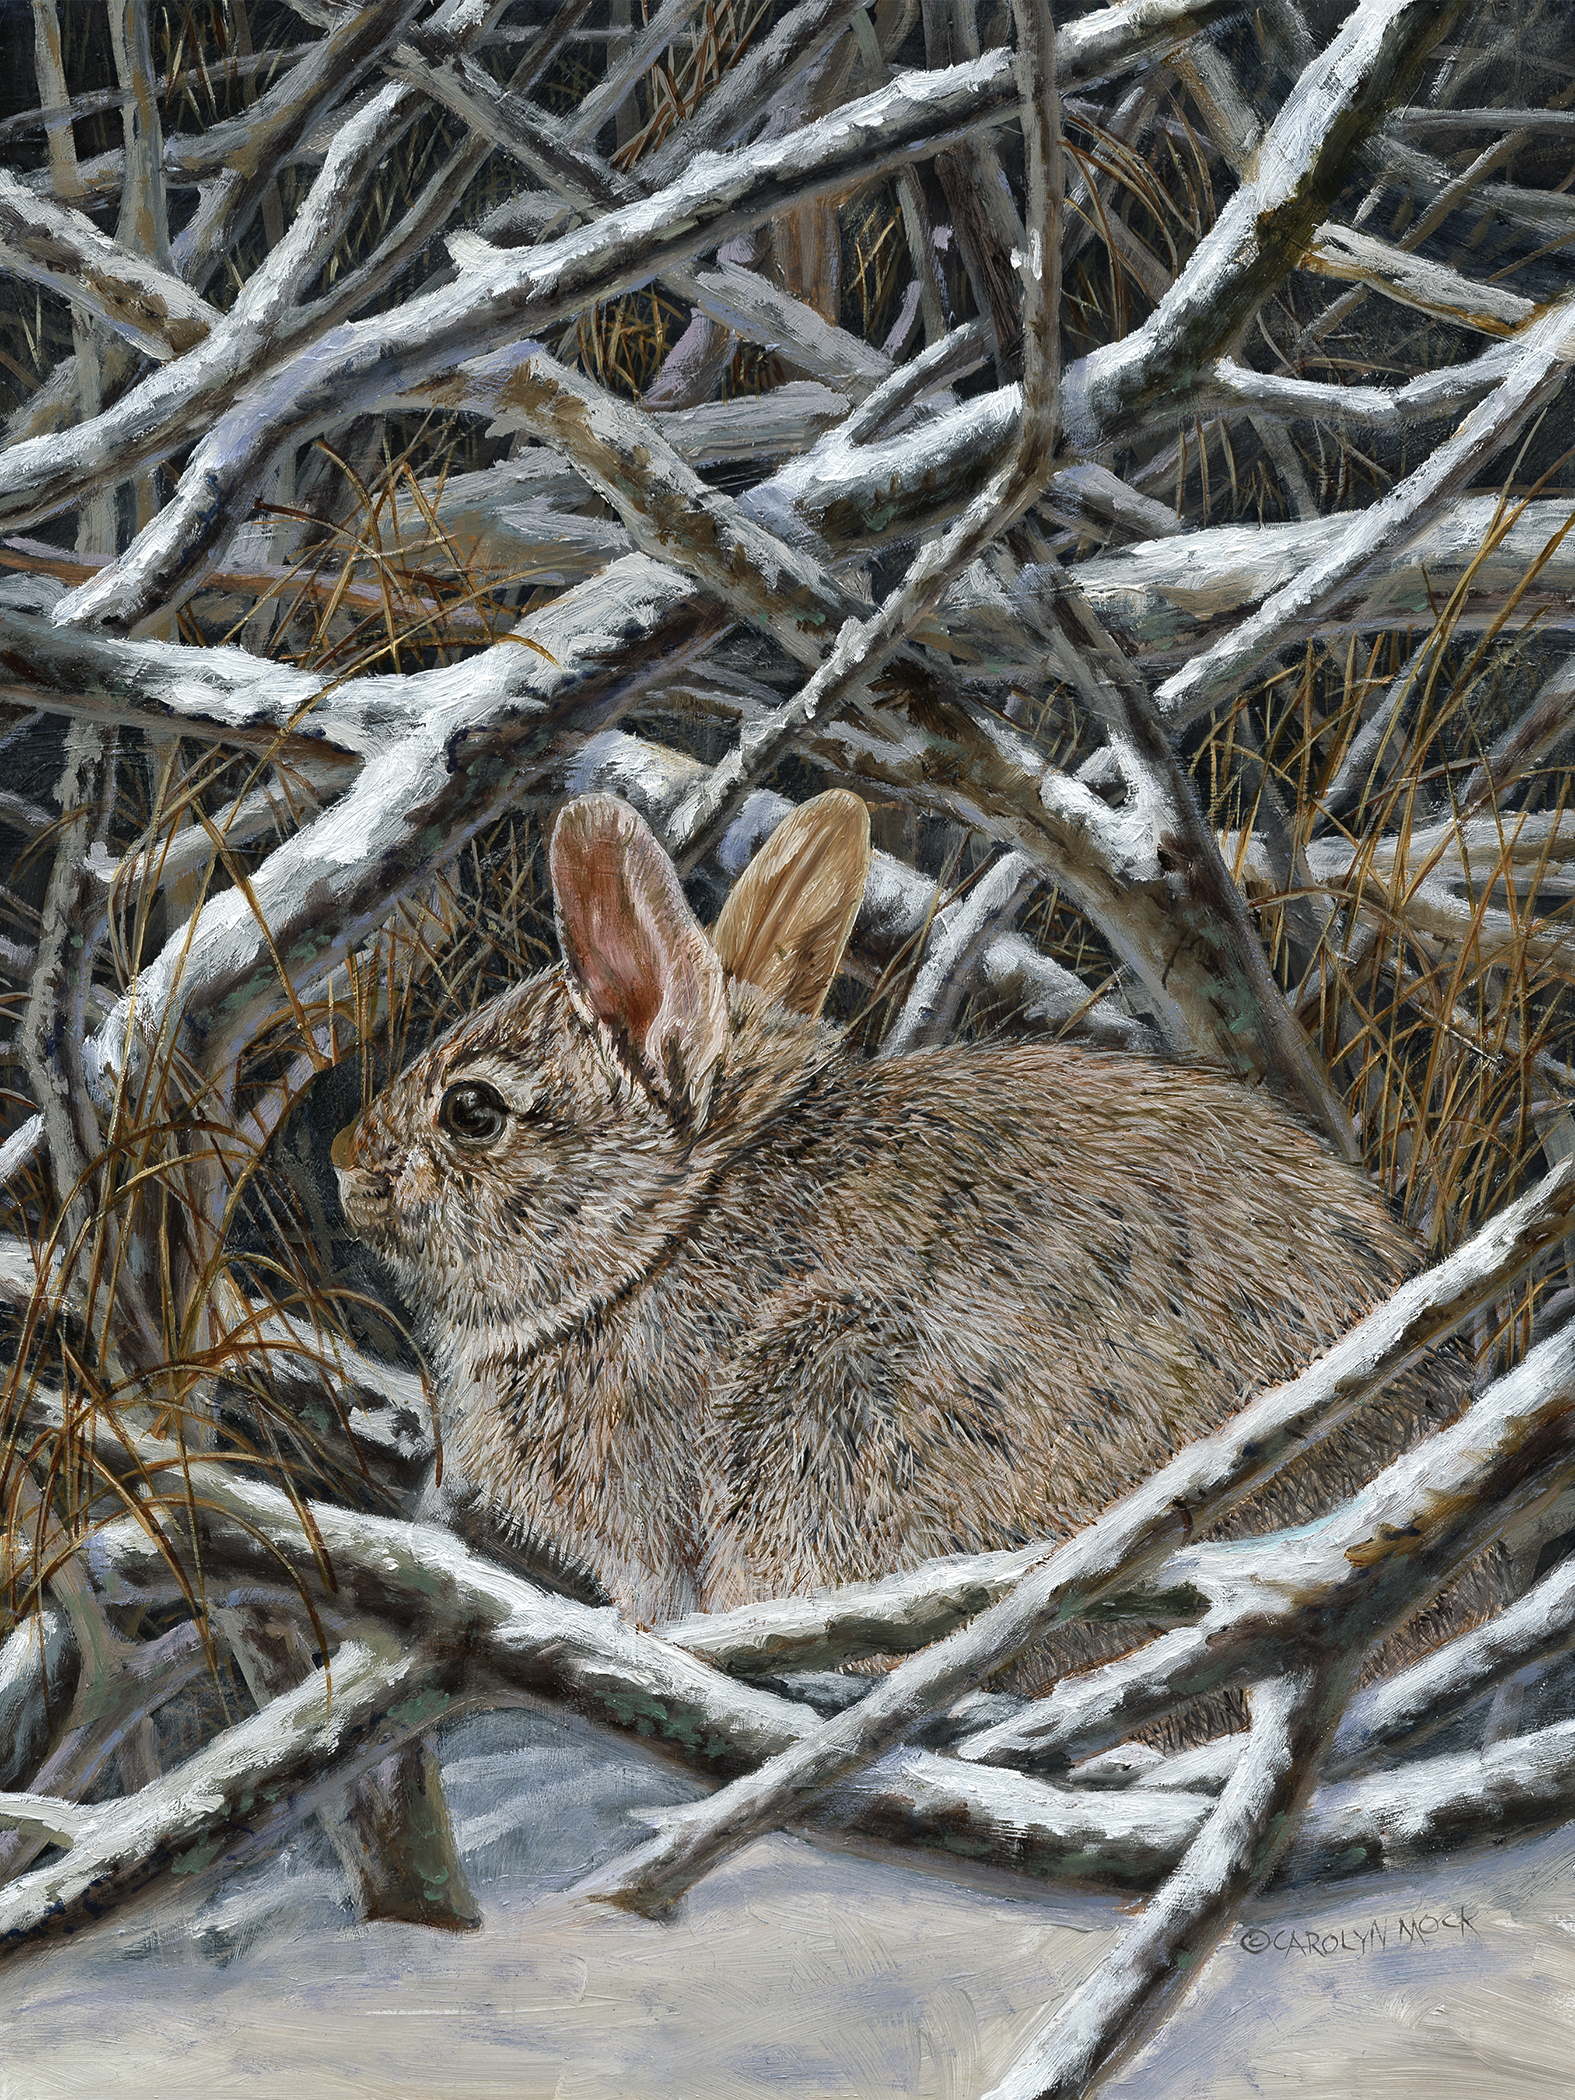 A small bunny takes shelter in some sticks and snow